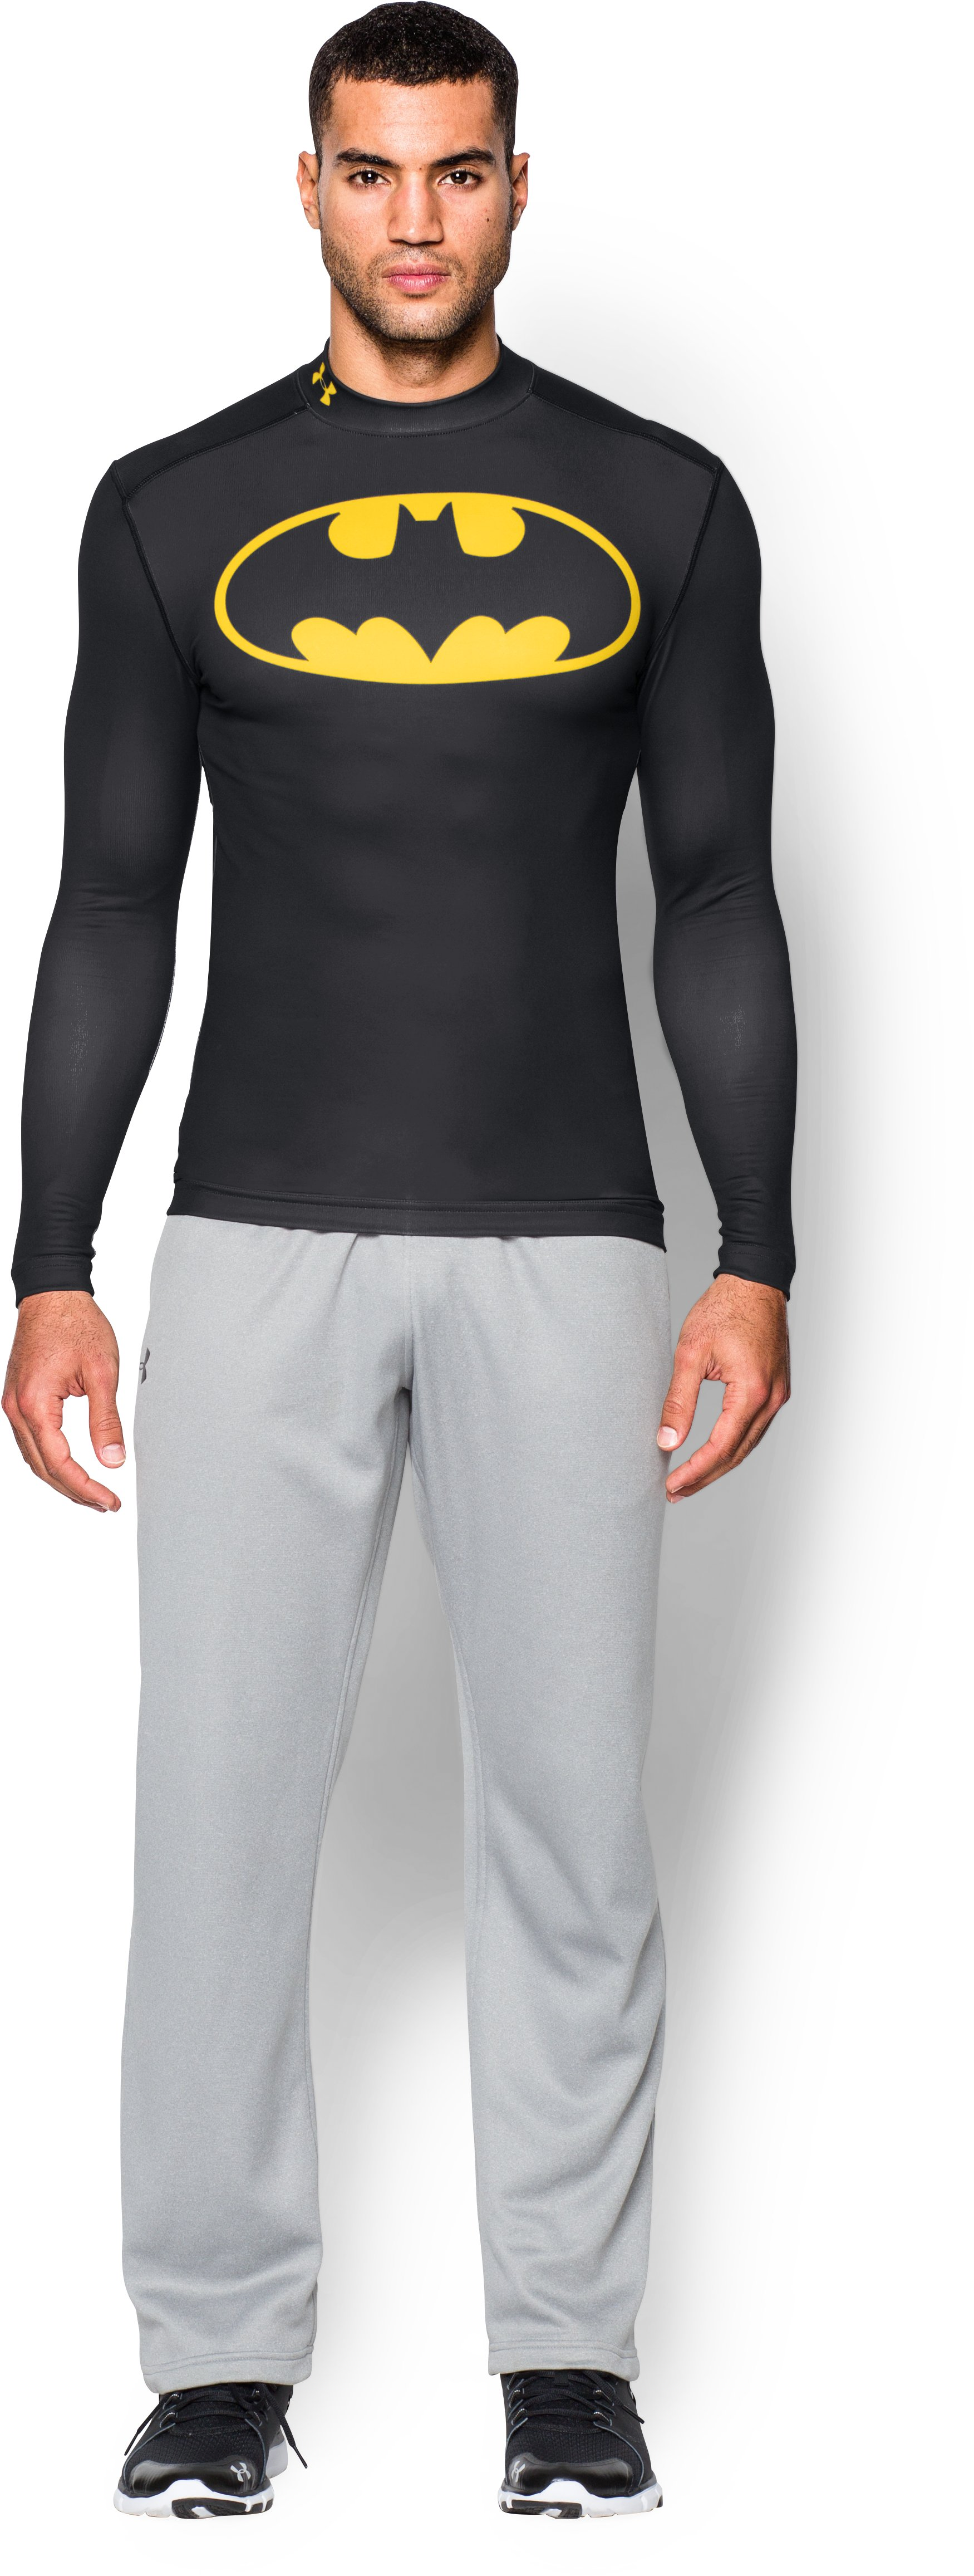 Under Armour Men S Compression Shirt